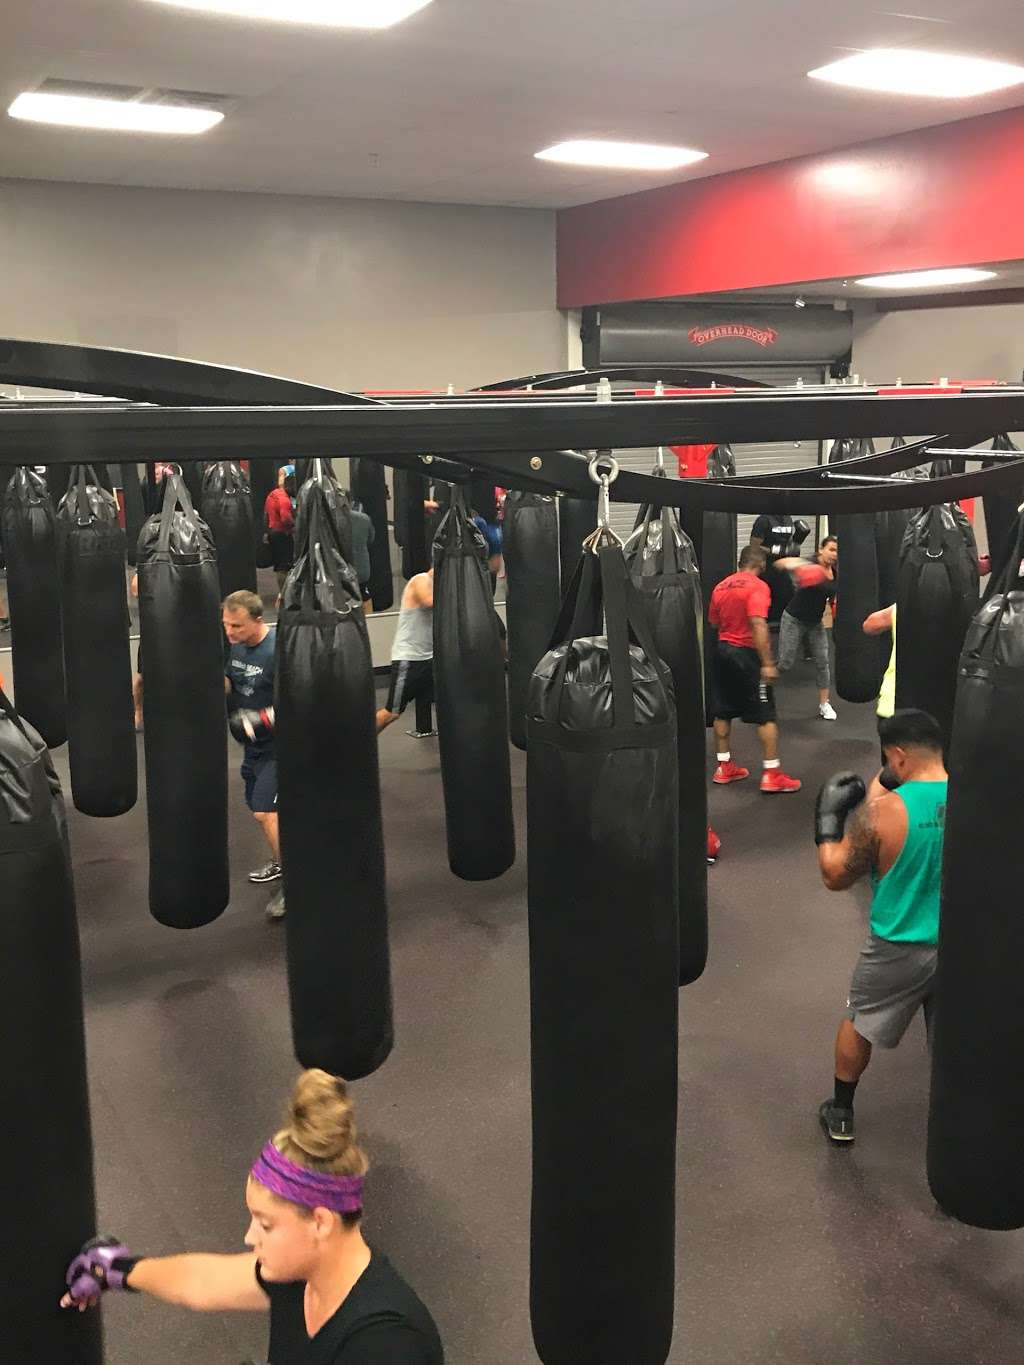 Webb Fitness and MMA - gym  | Photo 6 of 10 | Address: 475 Hurffville - Cross Keys Rd unit 1, Sewell, NJ 08080, USA | Phone: (856) 228-8269